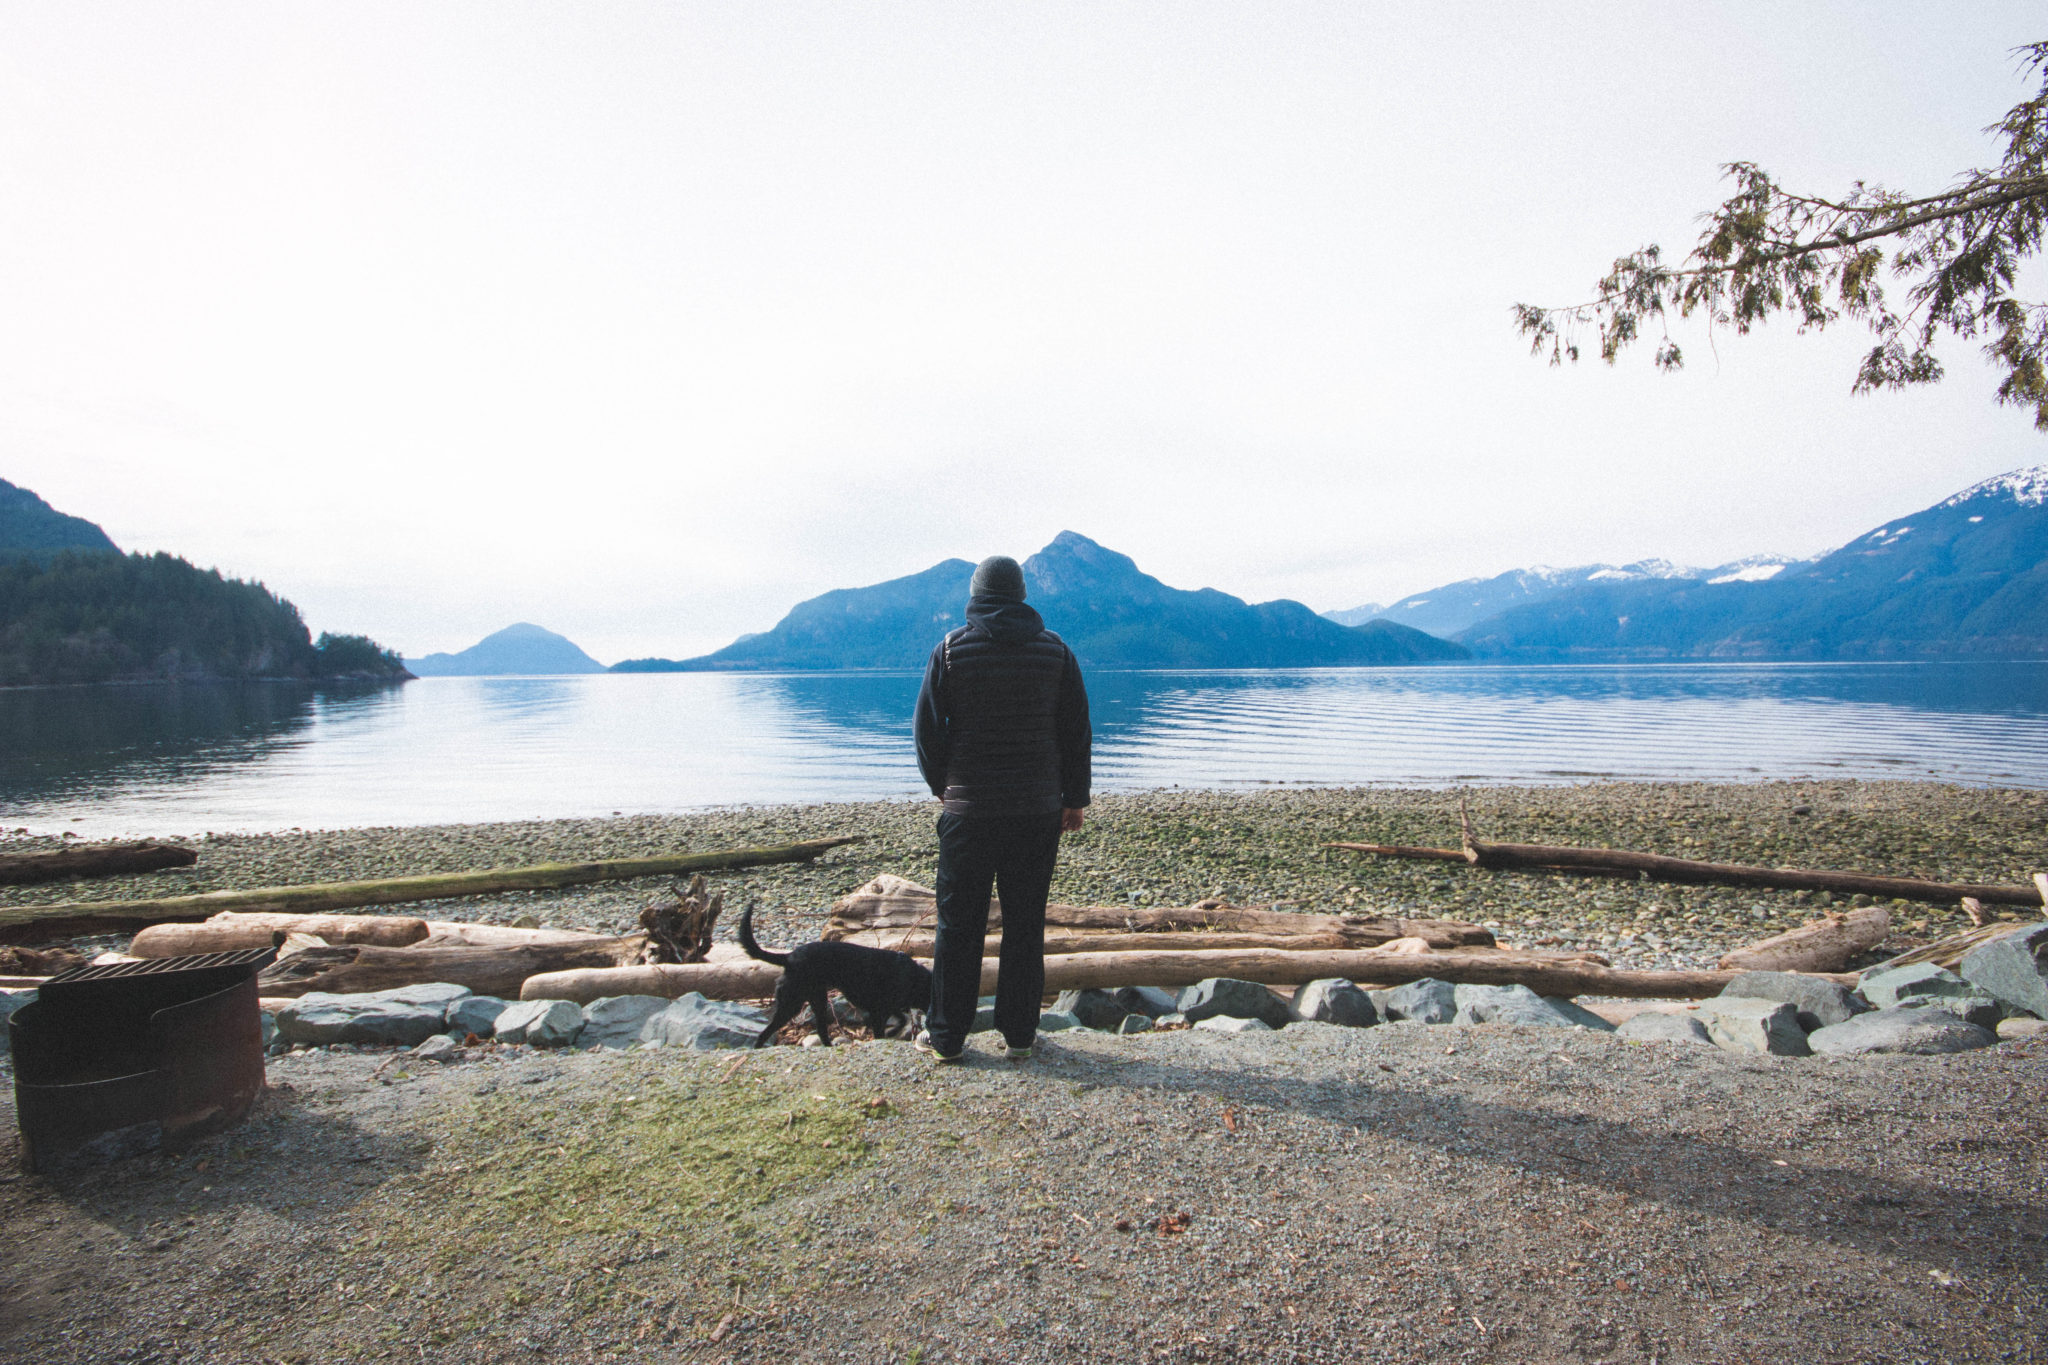 dog and human at porteau cove campsite